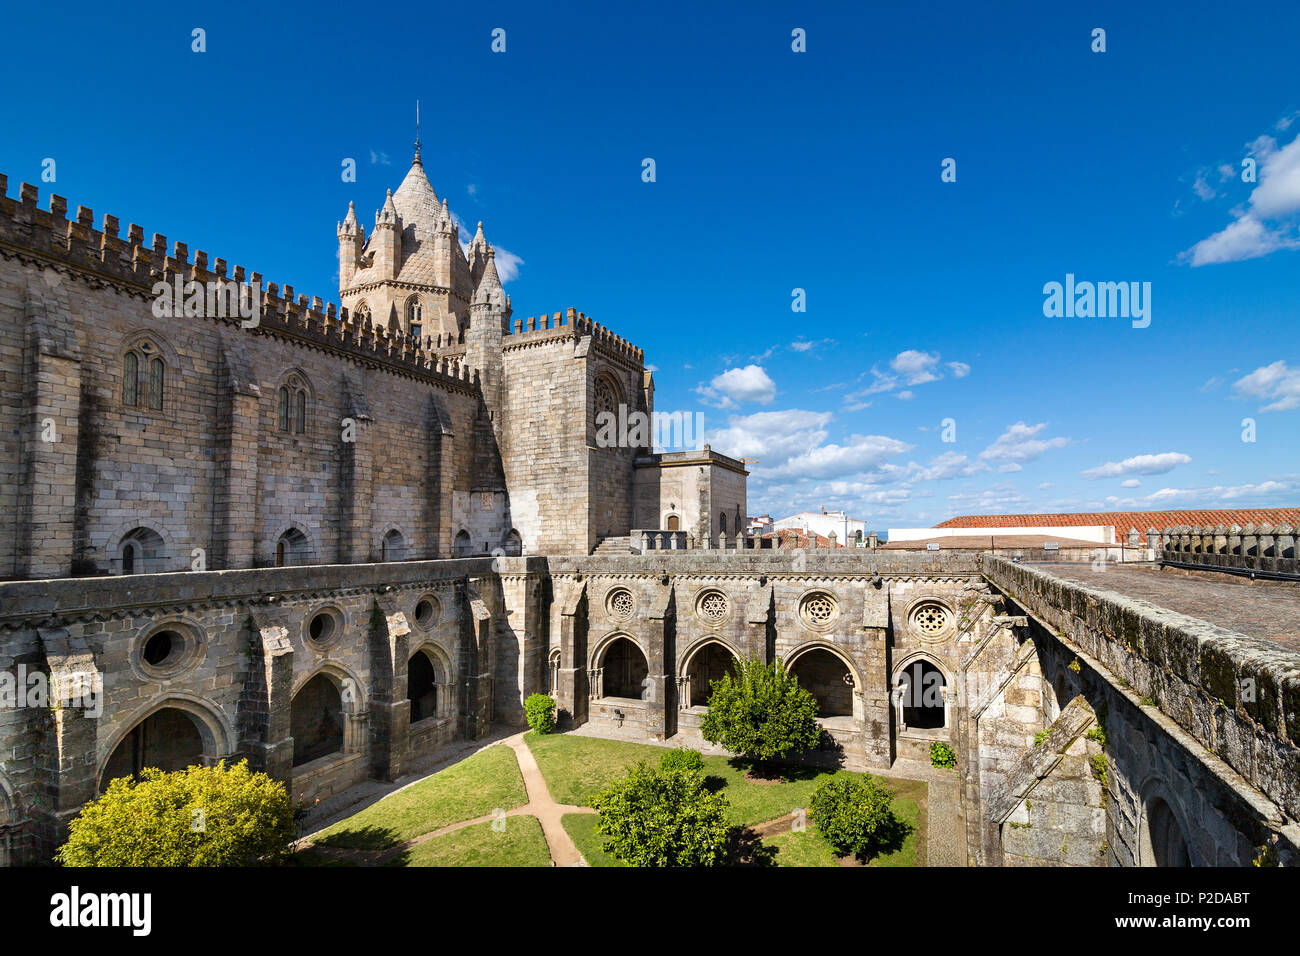 Cloître, cathédrale, Evora (Alentejo, Portugal Photo Stock